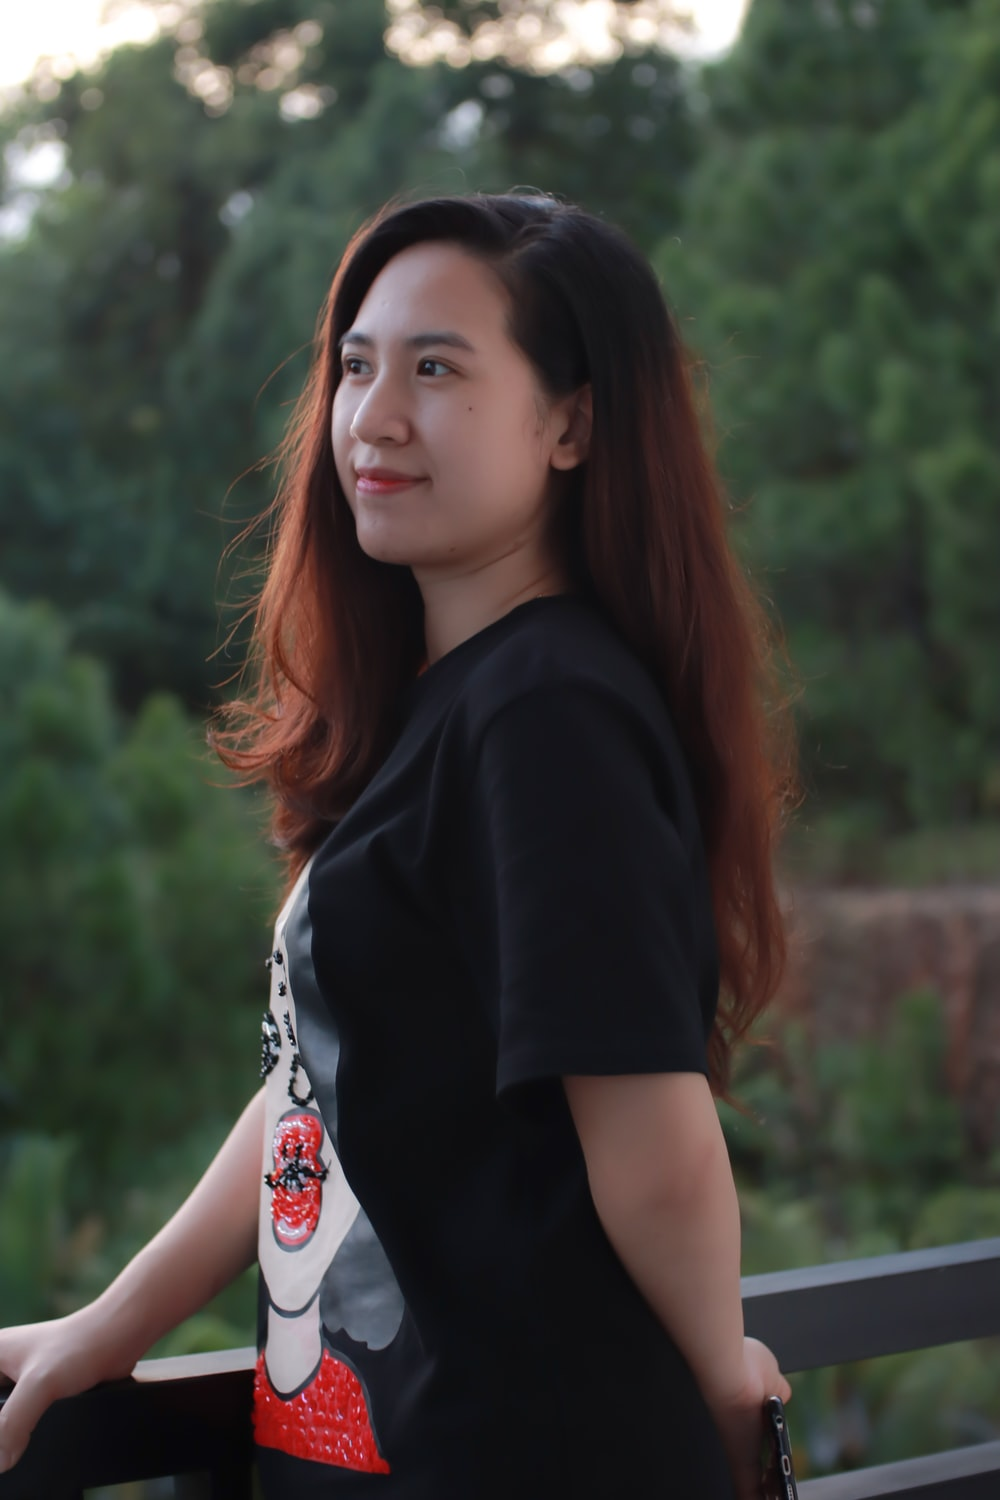 woman in black and white t-shirt